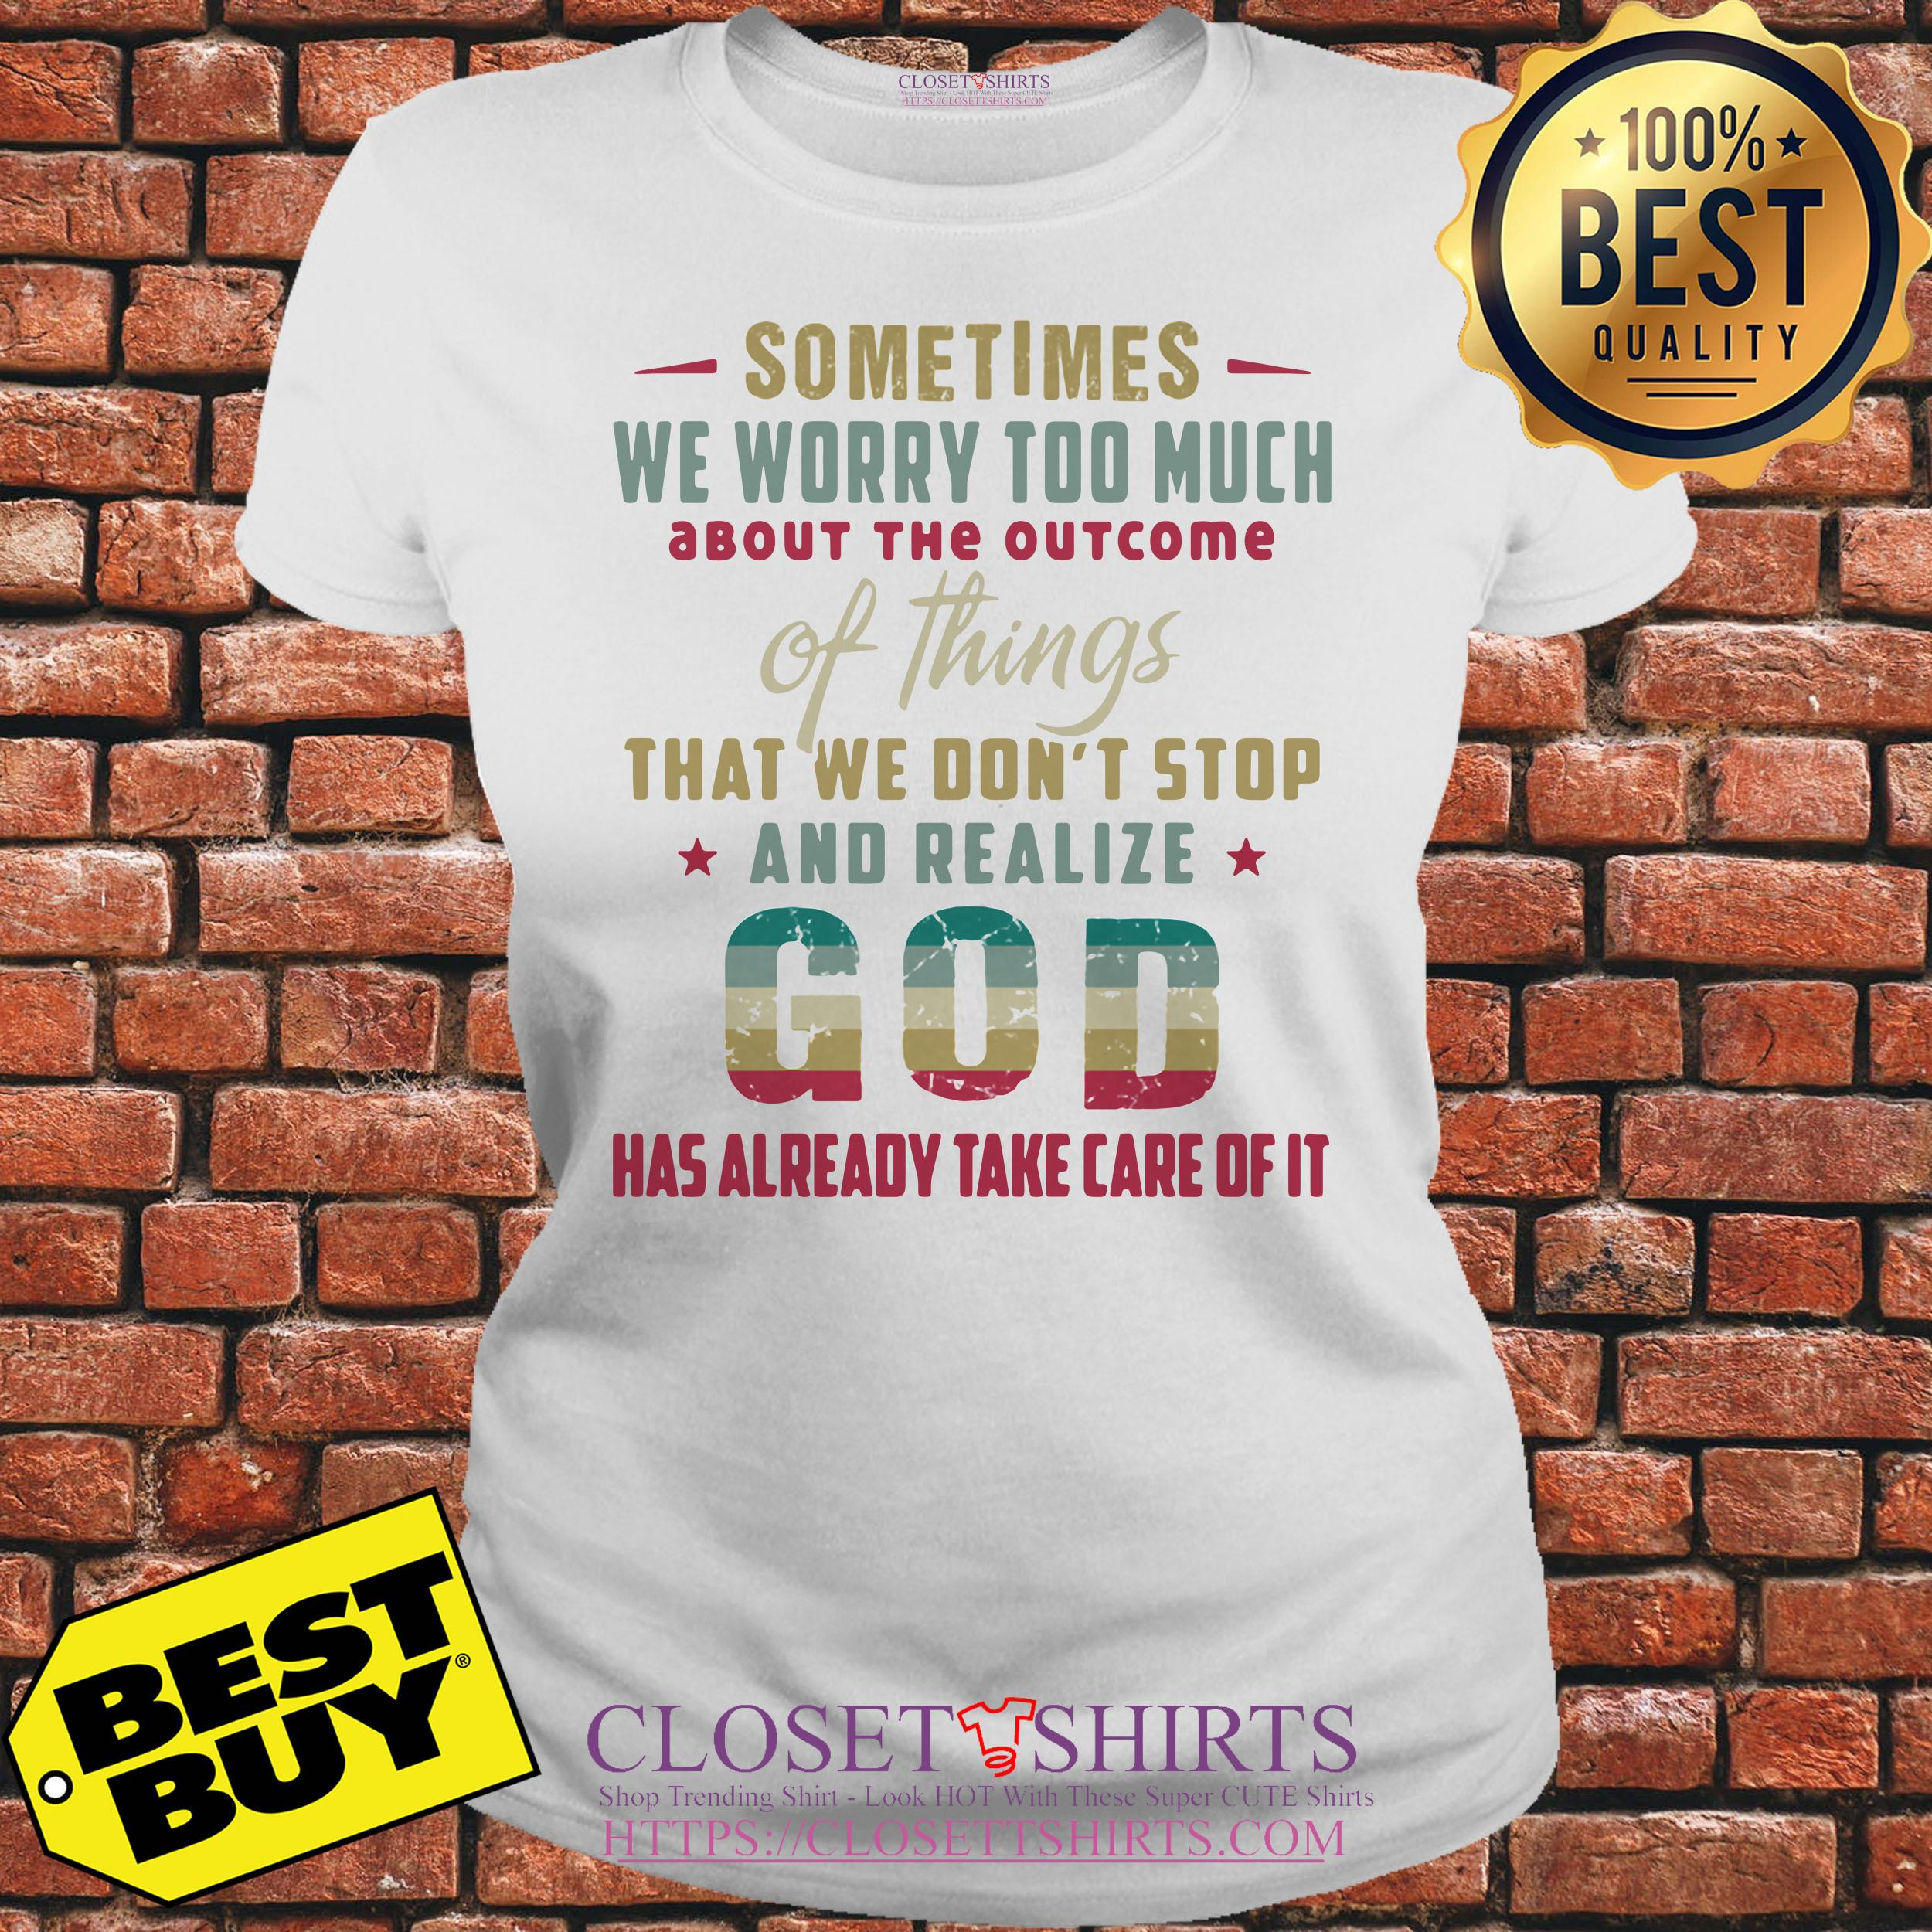 God Sometimes We Worry Too Much Has Already Take Care Of It v-neck